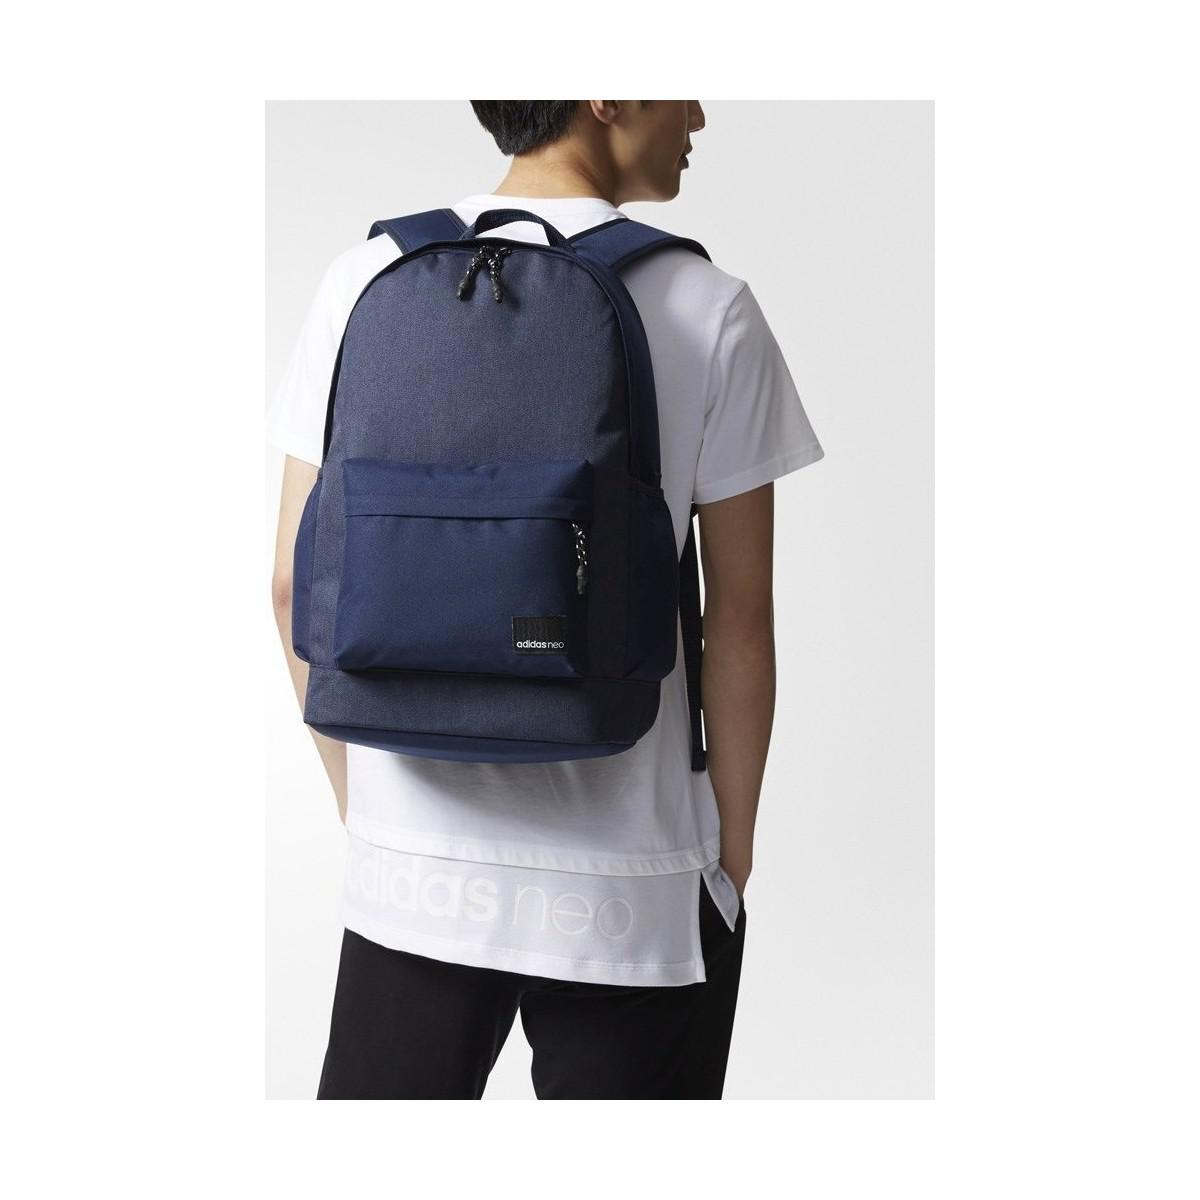 adidas Bp Daily Xl Women s Backpack In Multicolour in Blue for Men ... 0e4cca5ab9e7b